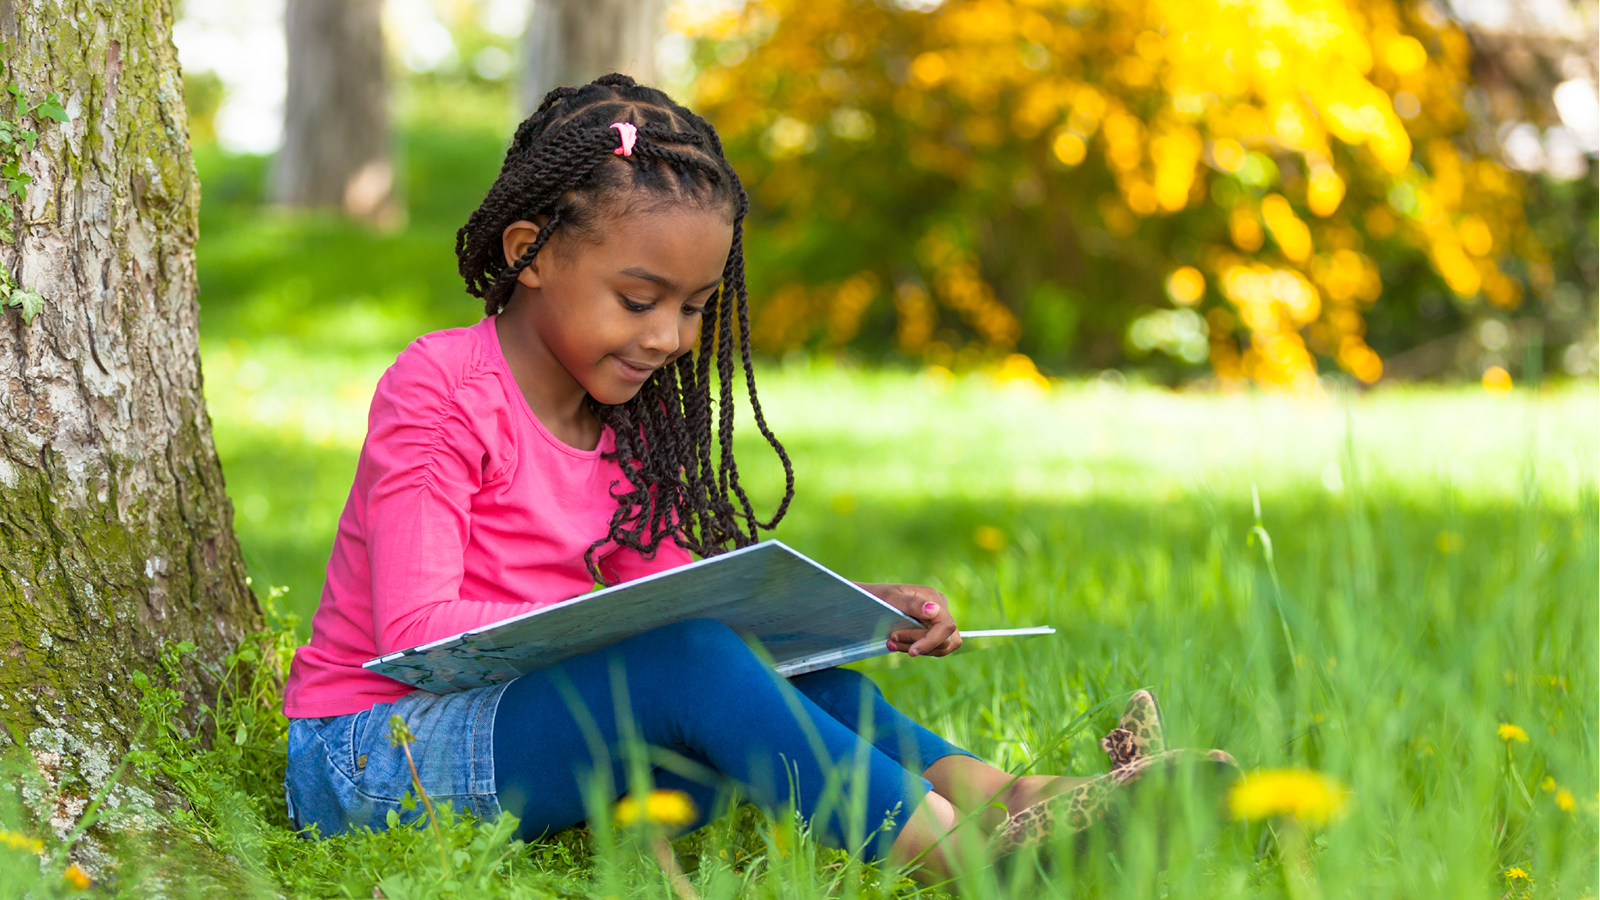 How Can You Engage Students in Reading? Try These 5 Strategies